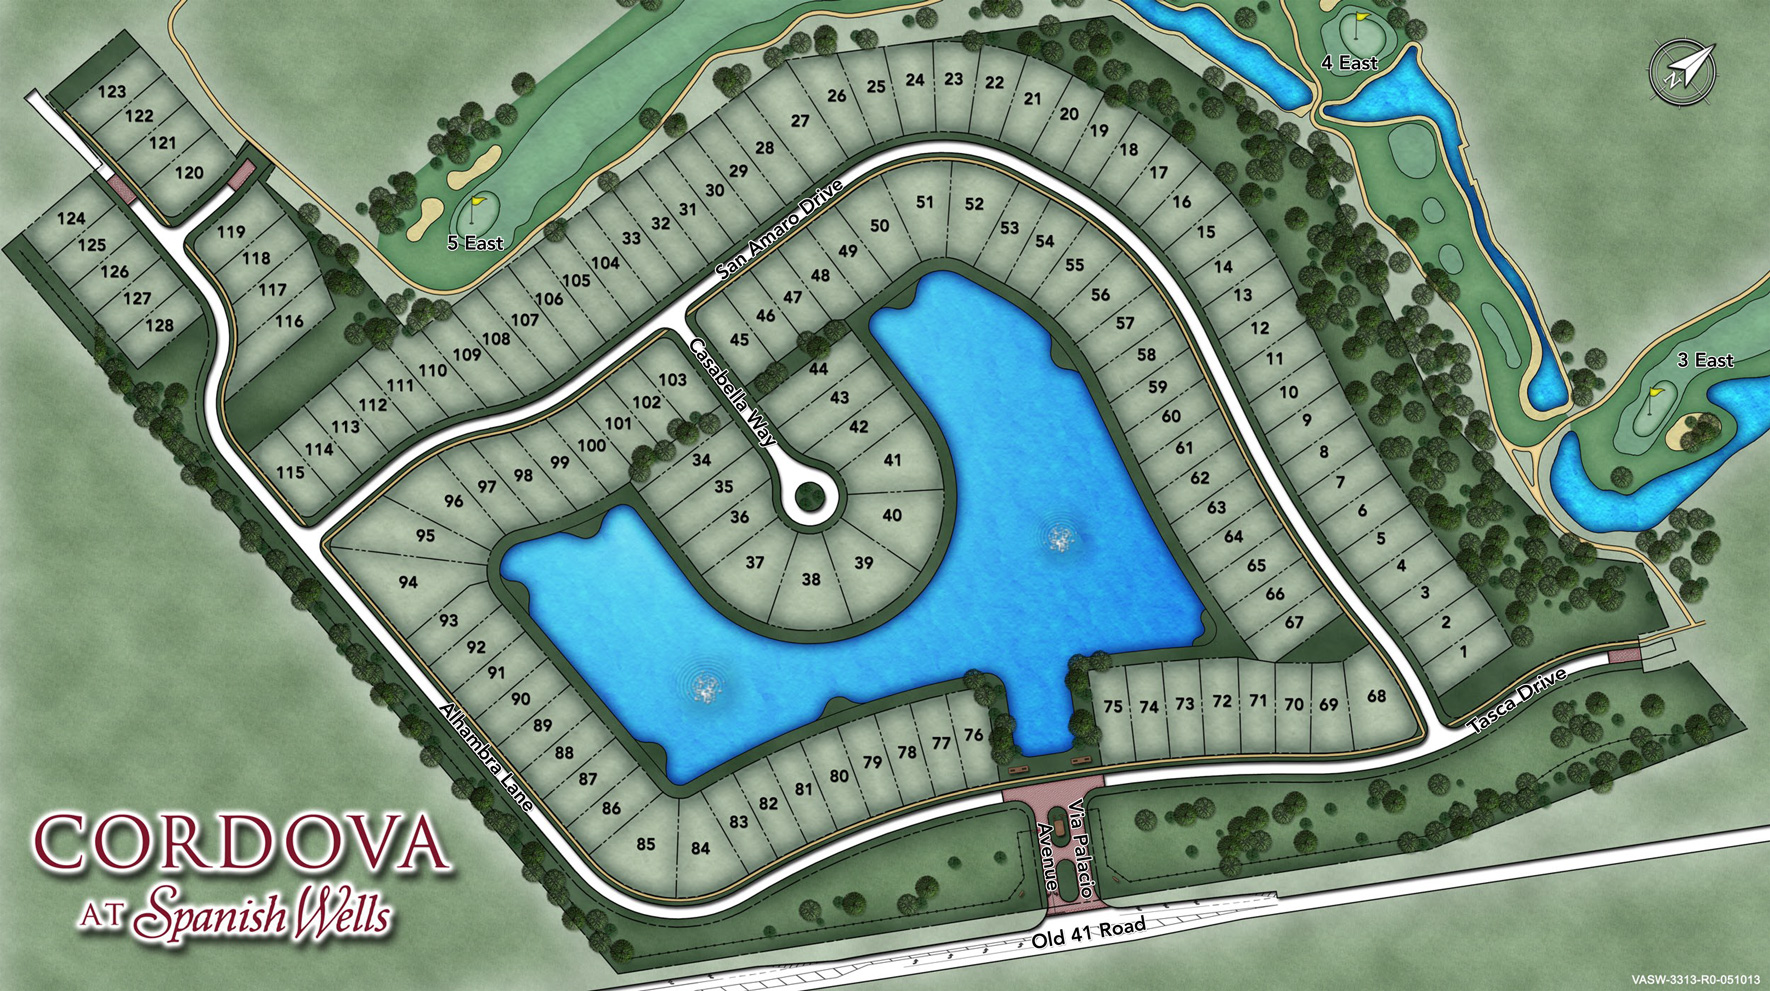 Cordova at Spanish Wells Site Plan